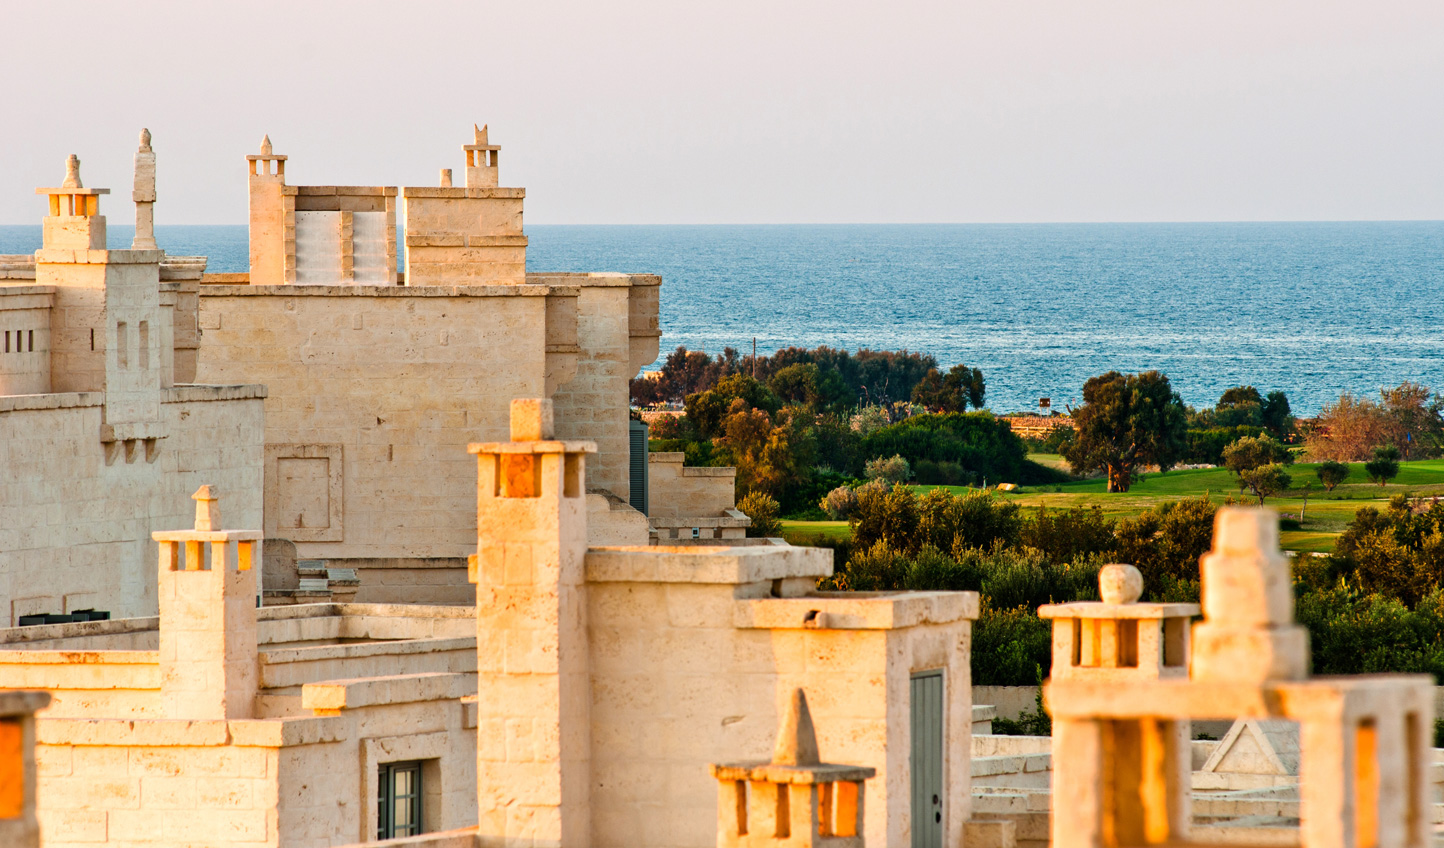 Settle in at Borgo Egnazia and soak in the sea views